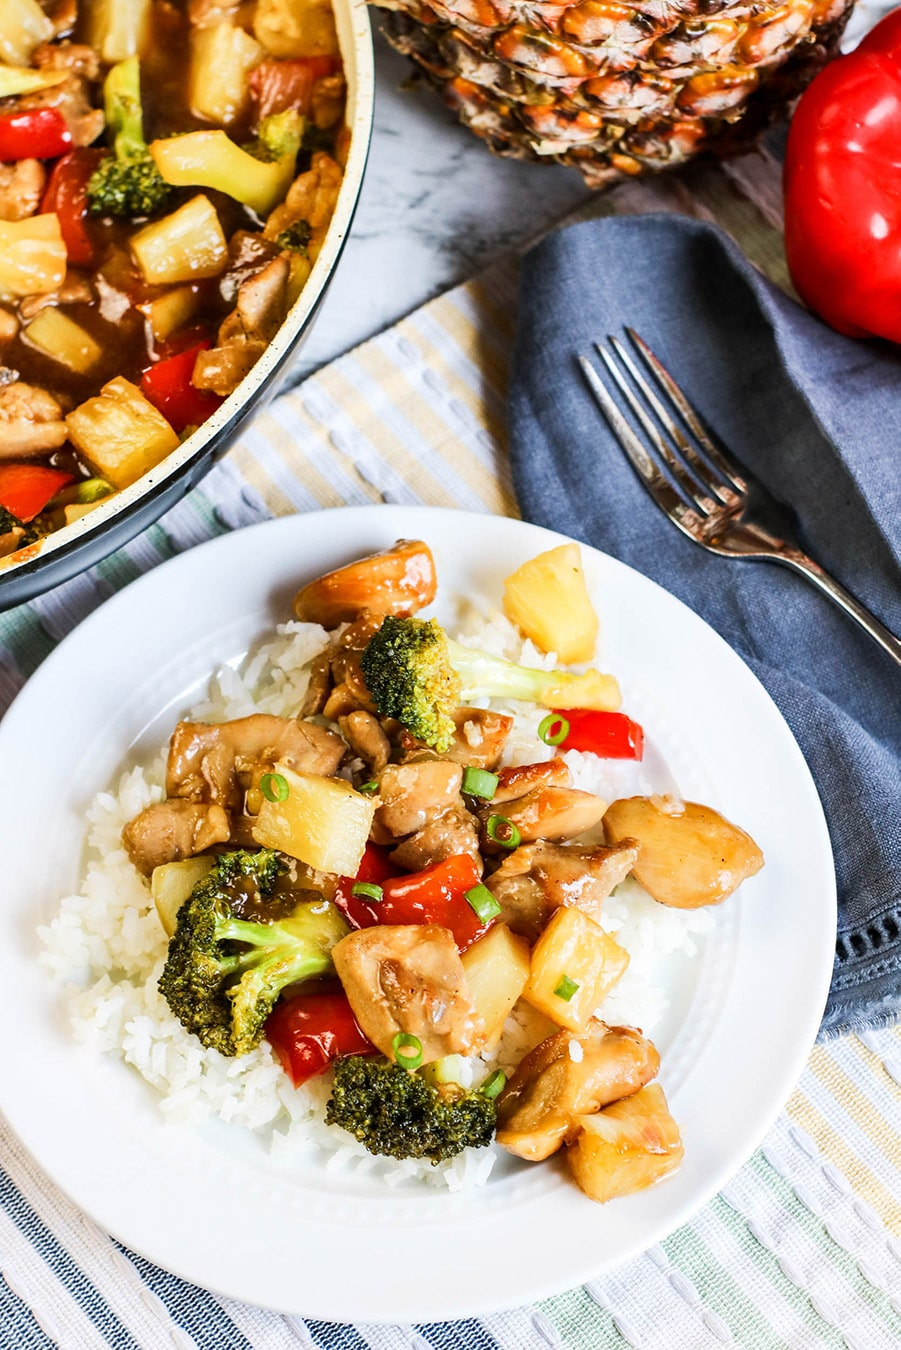 pineapple chicken stir-fry over white rice on a white plate with a fork on the side and skillet in the background.